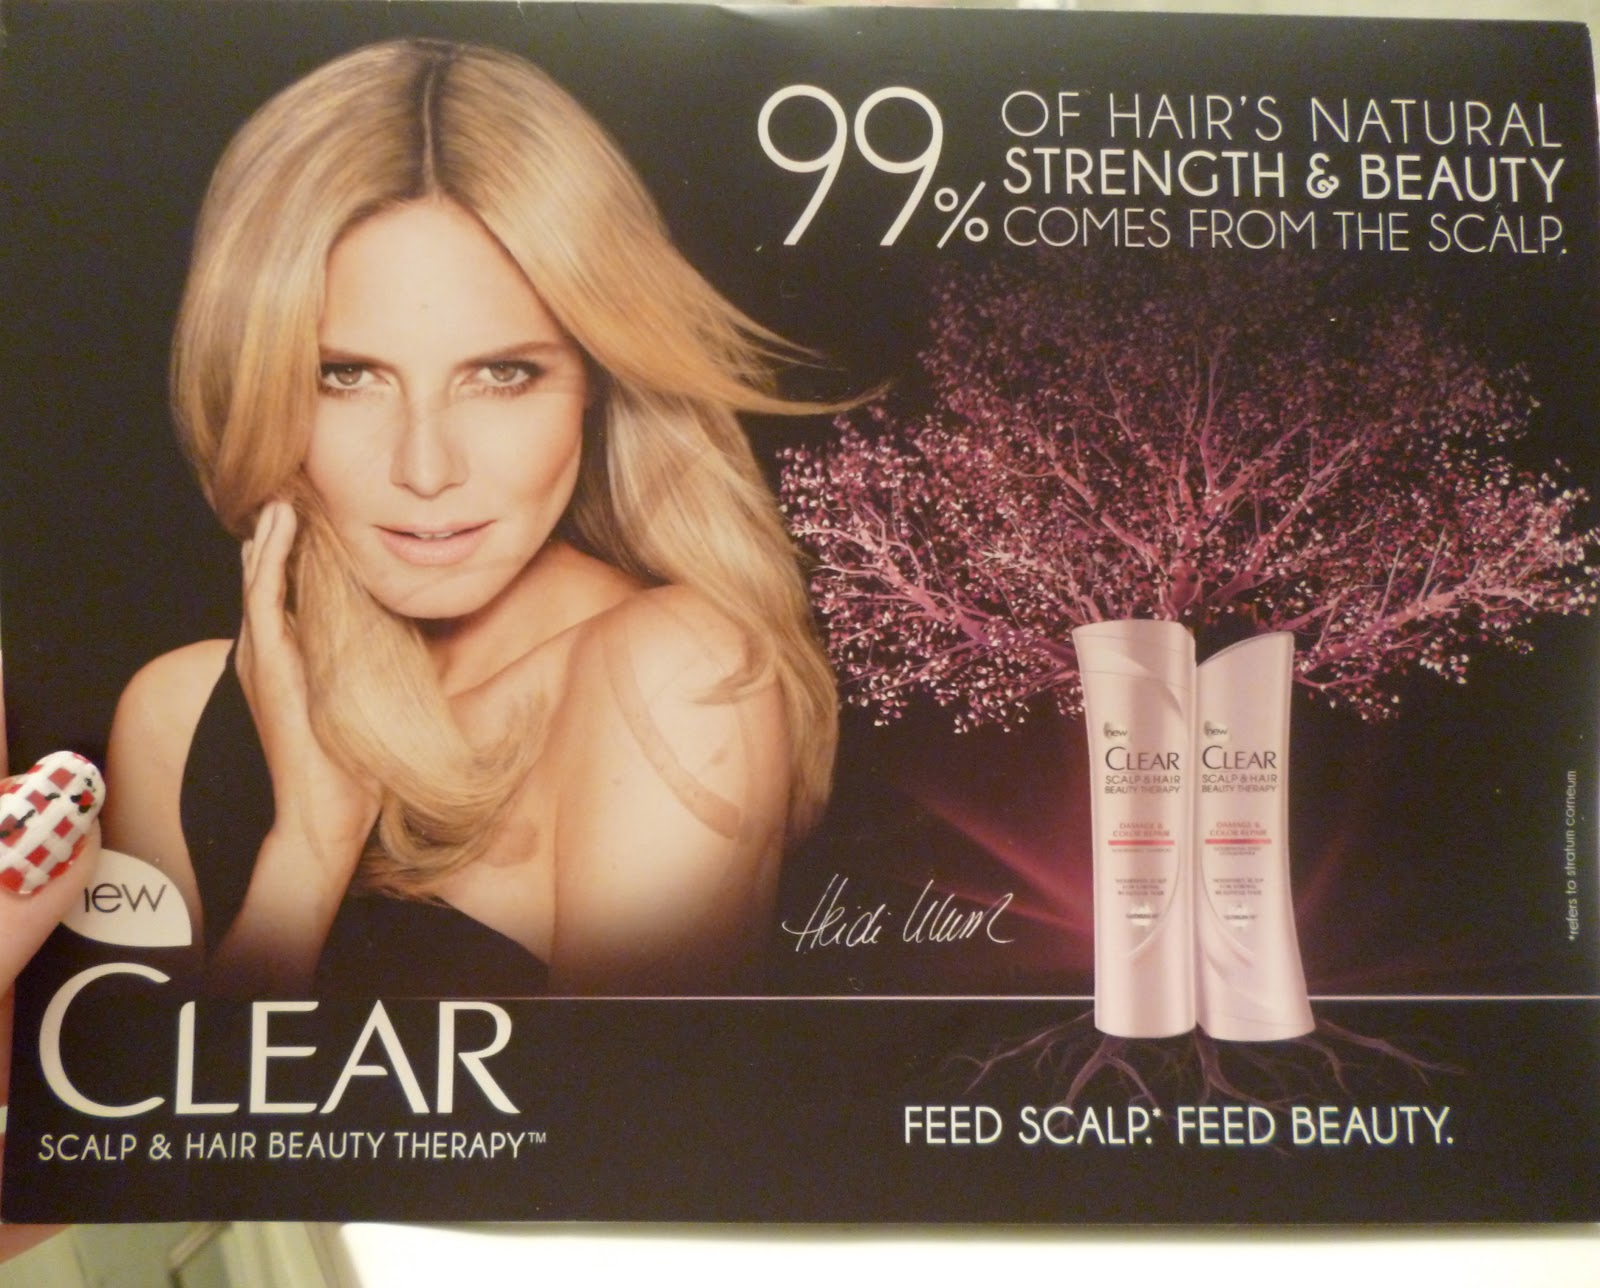 http://2.bp.blogspot.com/-3TK1TkrnJDc/UAqwgJkwEHI/AAAAAAAACxc/GxGL9eegKiQ/s1600/heidi+klum+clear+scalp+&+hair+therapy+shampoo+and+conditioner+sample+review.JPG